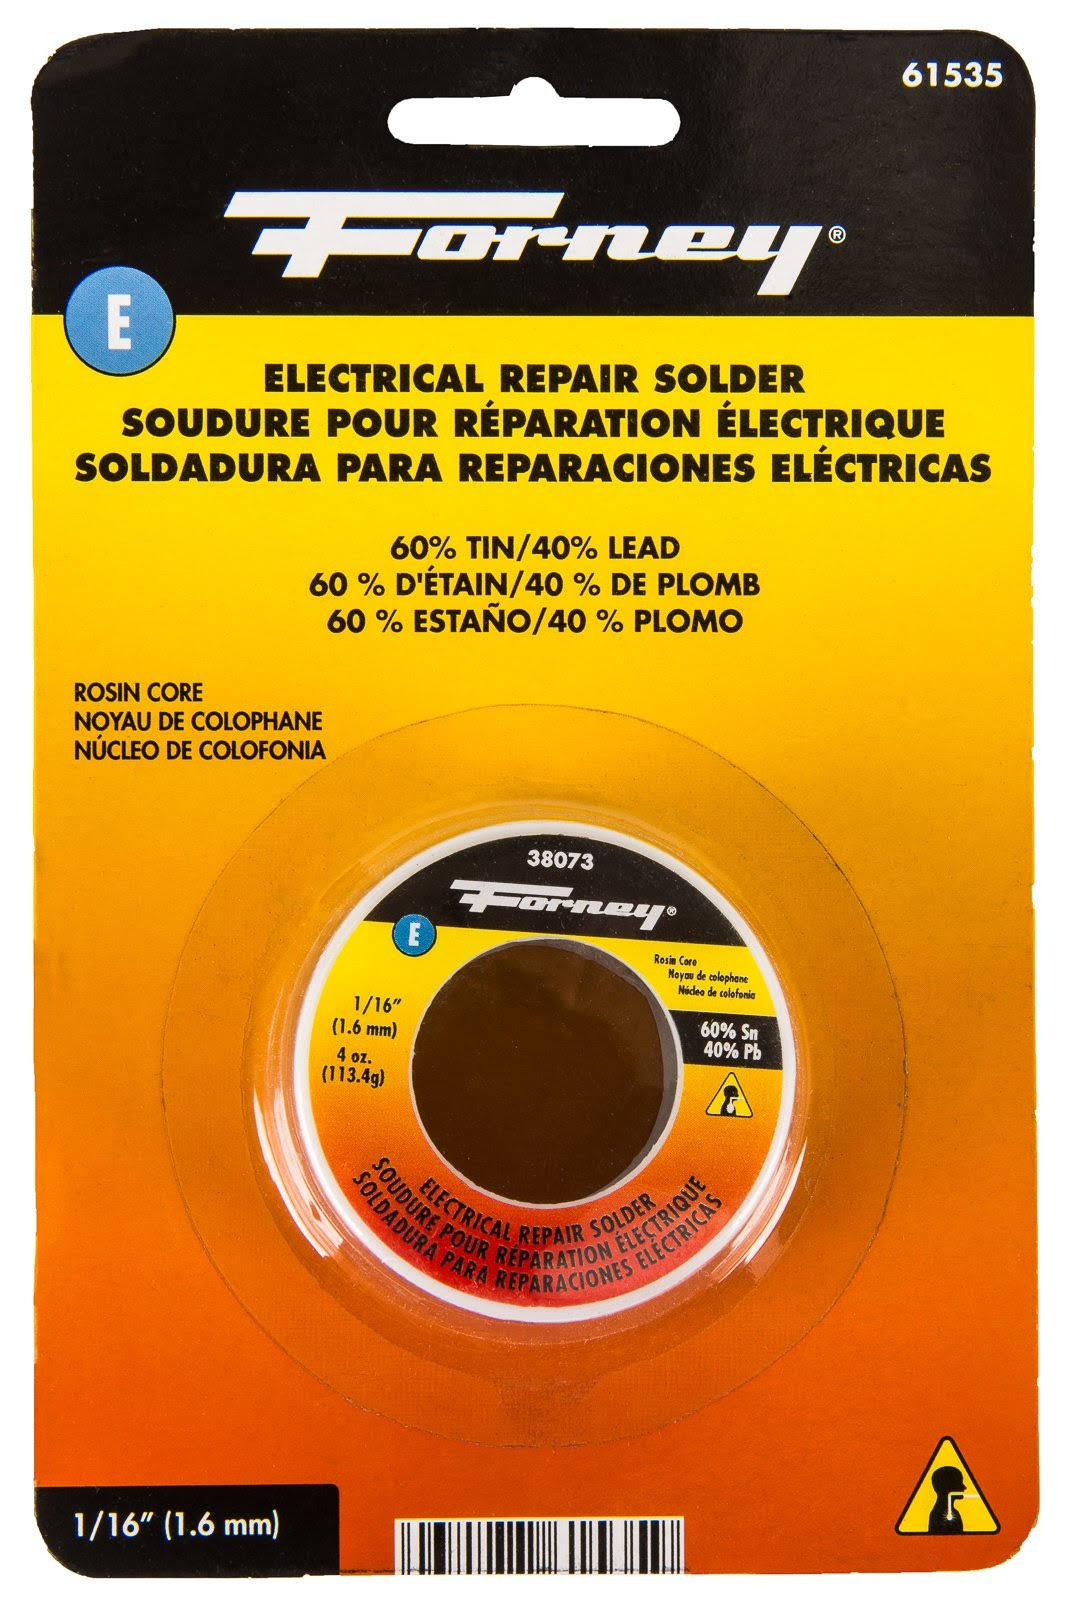 Forney 61535 Rosin Solder - 1.6mm